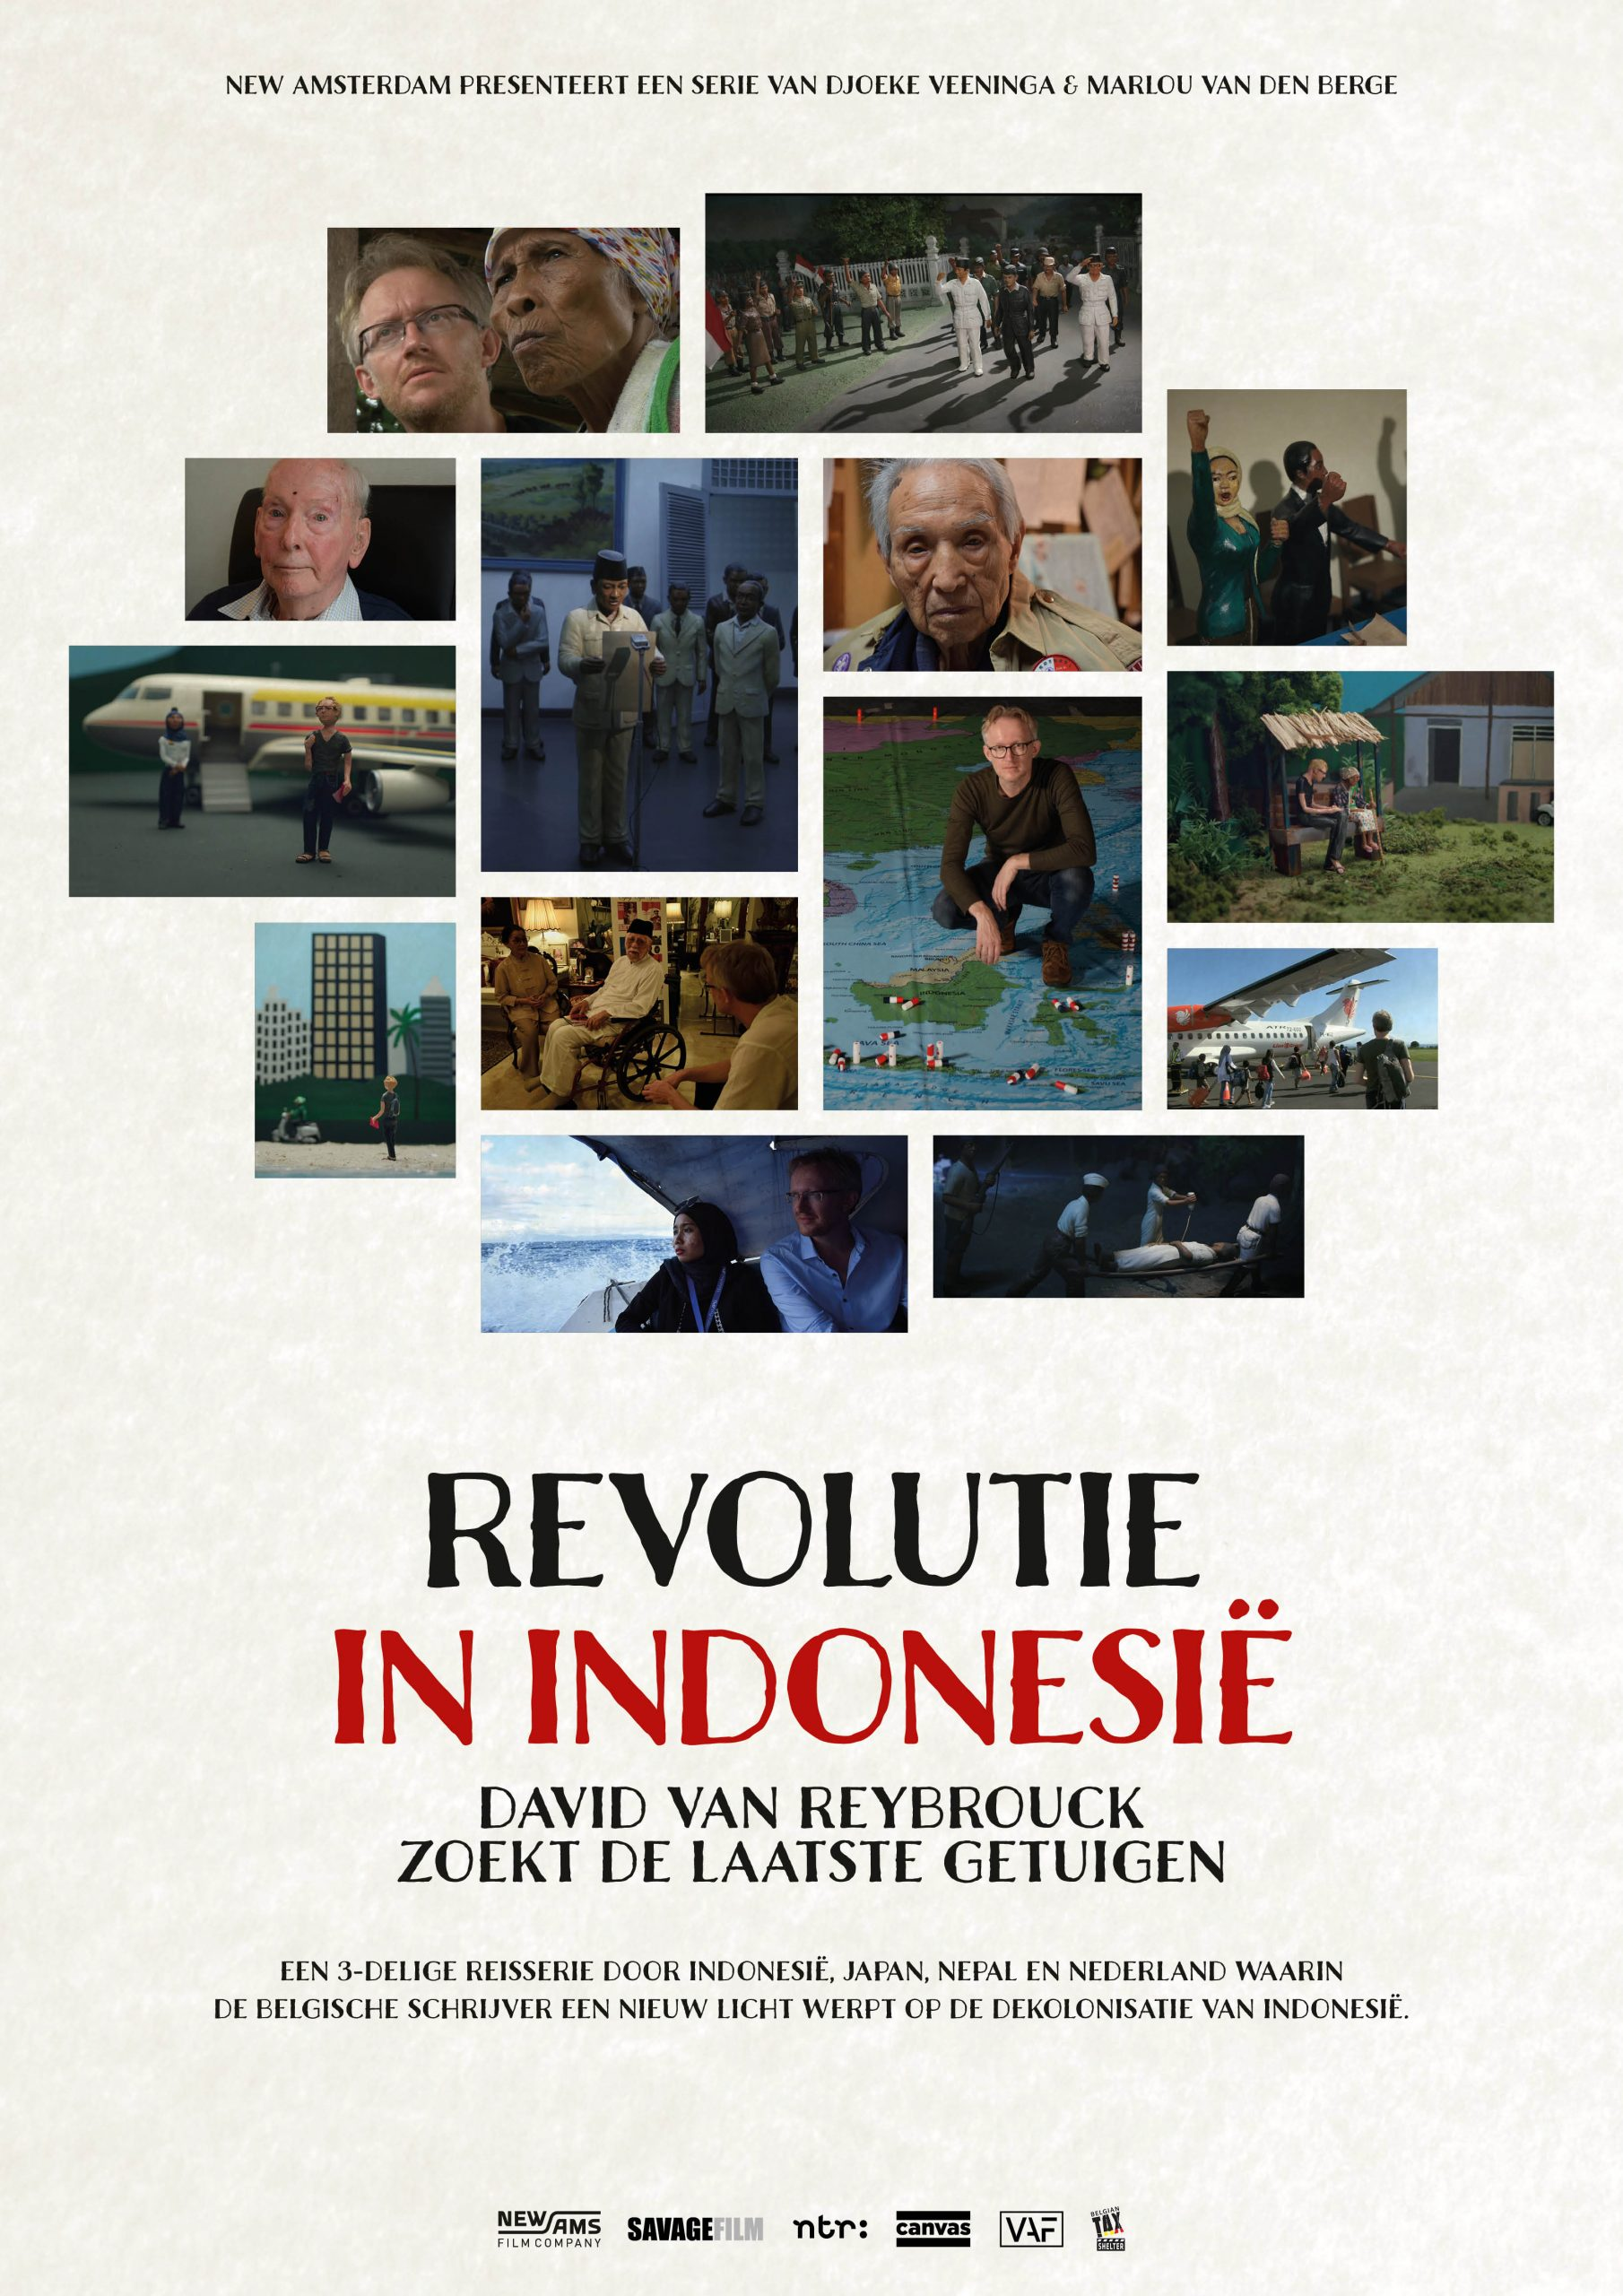 Revolution in Indonesia —</br>David Van Reybrouck searches for the last witnesses